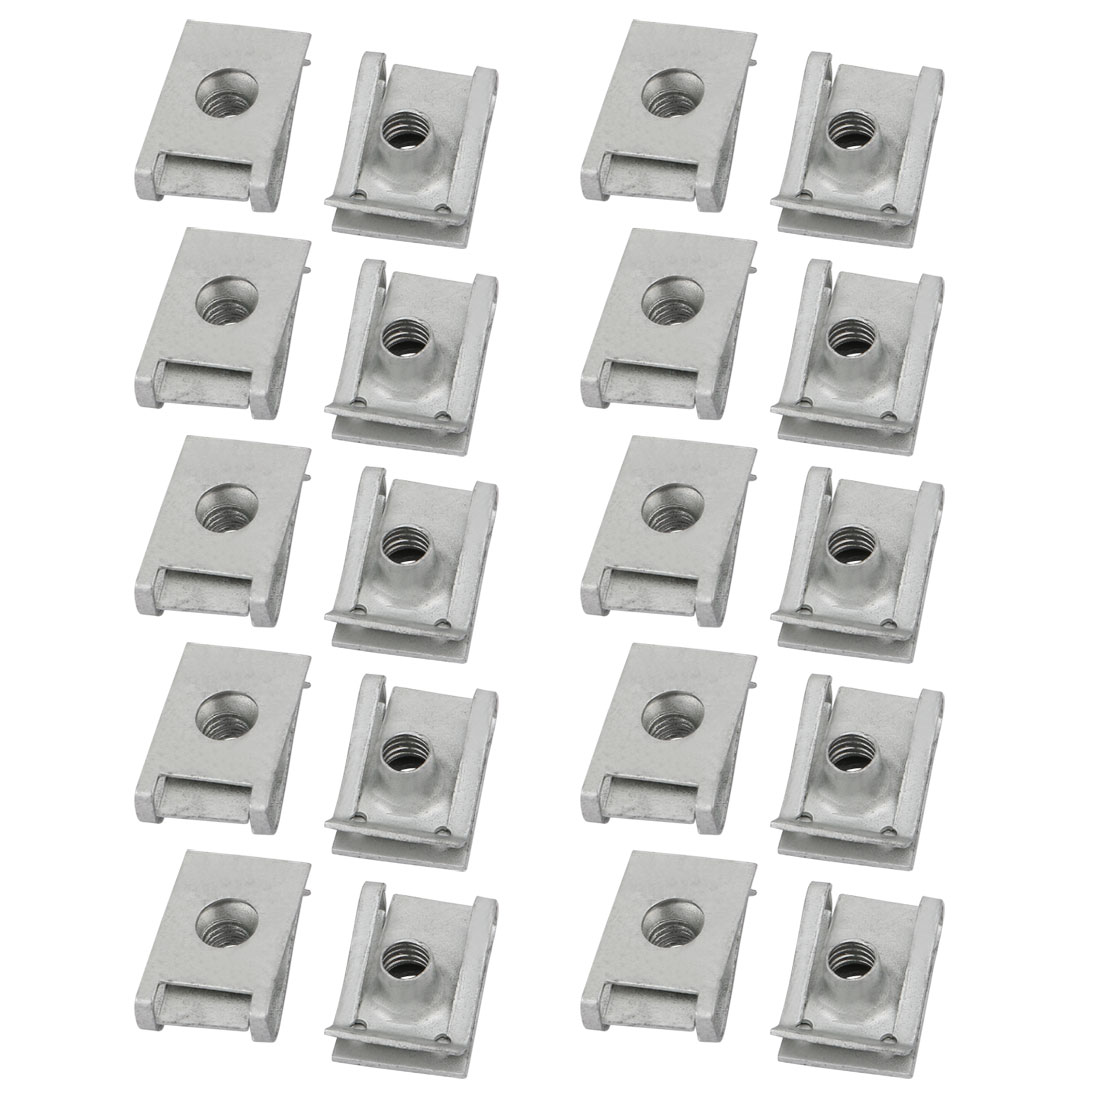 M6 24mmx16mm 65Mn Spring Steel White Zinc Plated Extruded U Nut Clip 20pcs